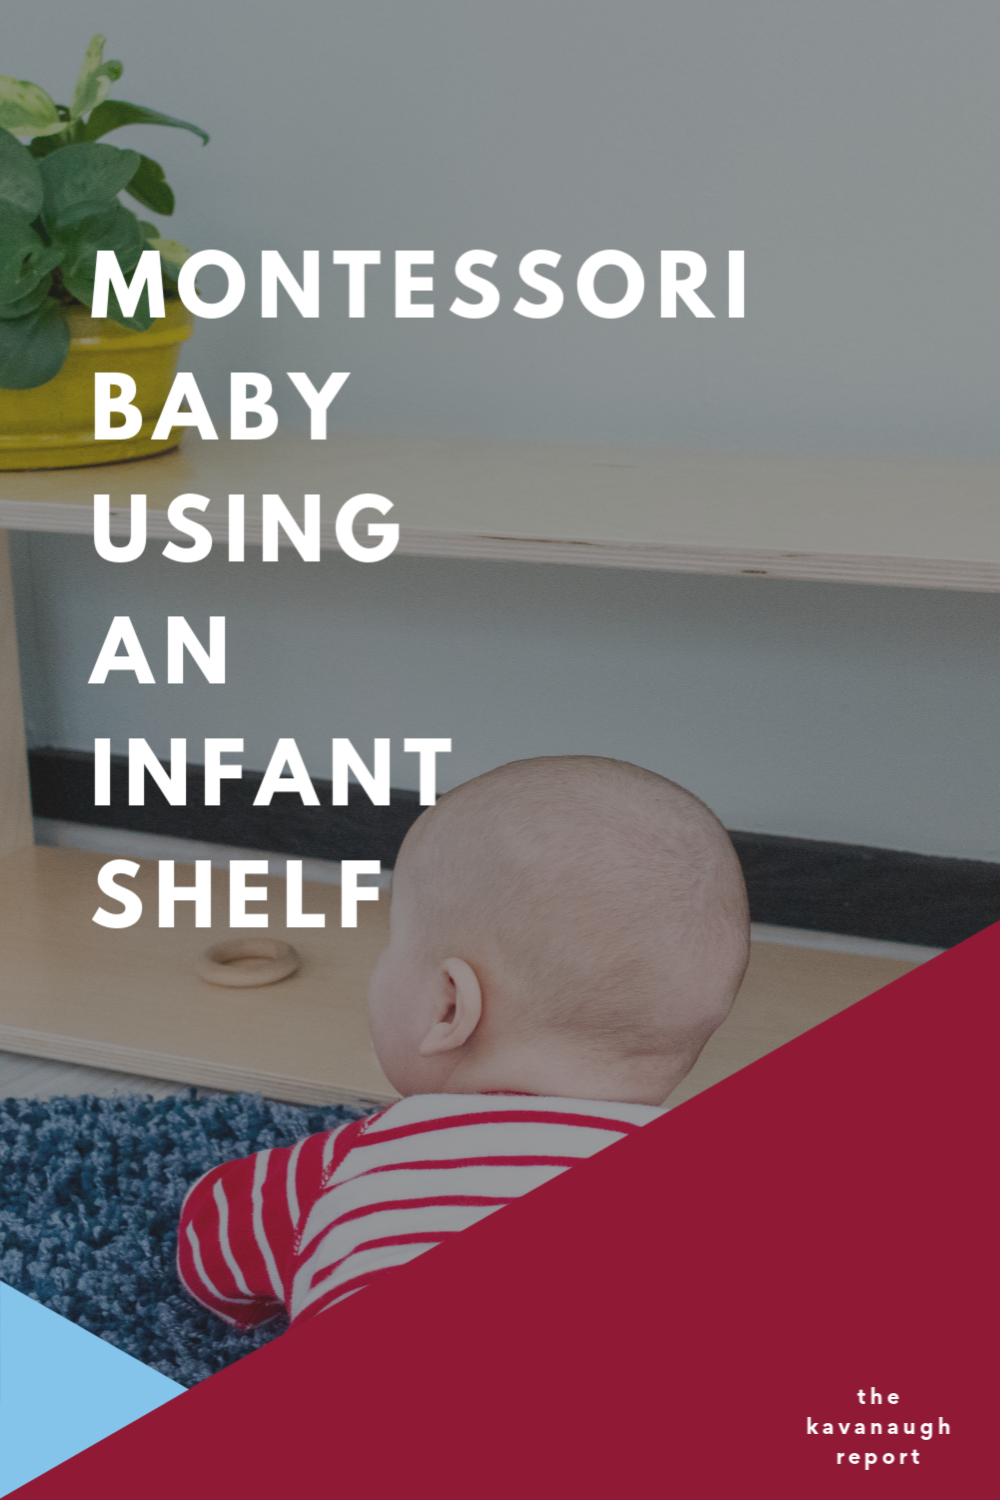 Some thoughts on using an infant shelf with your Montessori baby. Why this discovery is so important and exciting. Plus some things to look for when choosing a shelf for your baby.